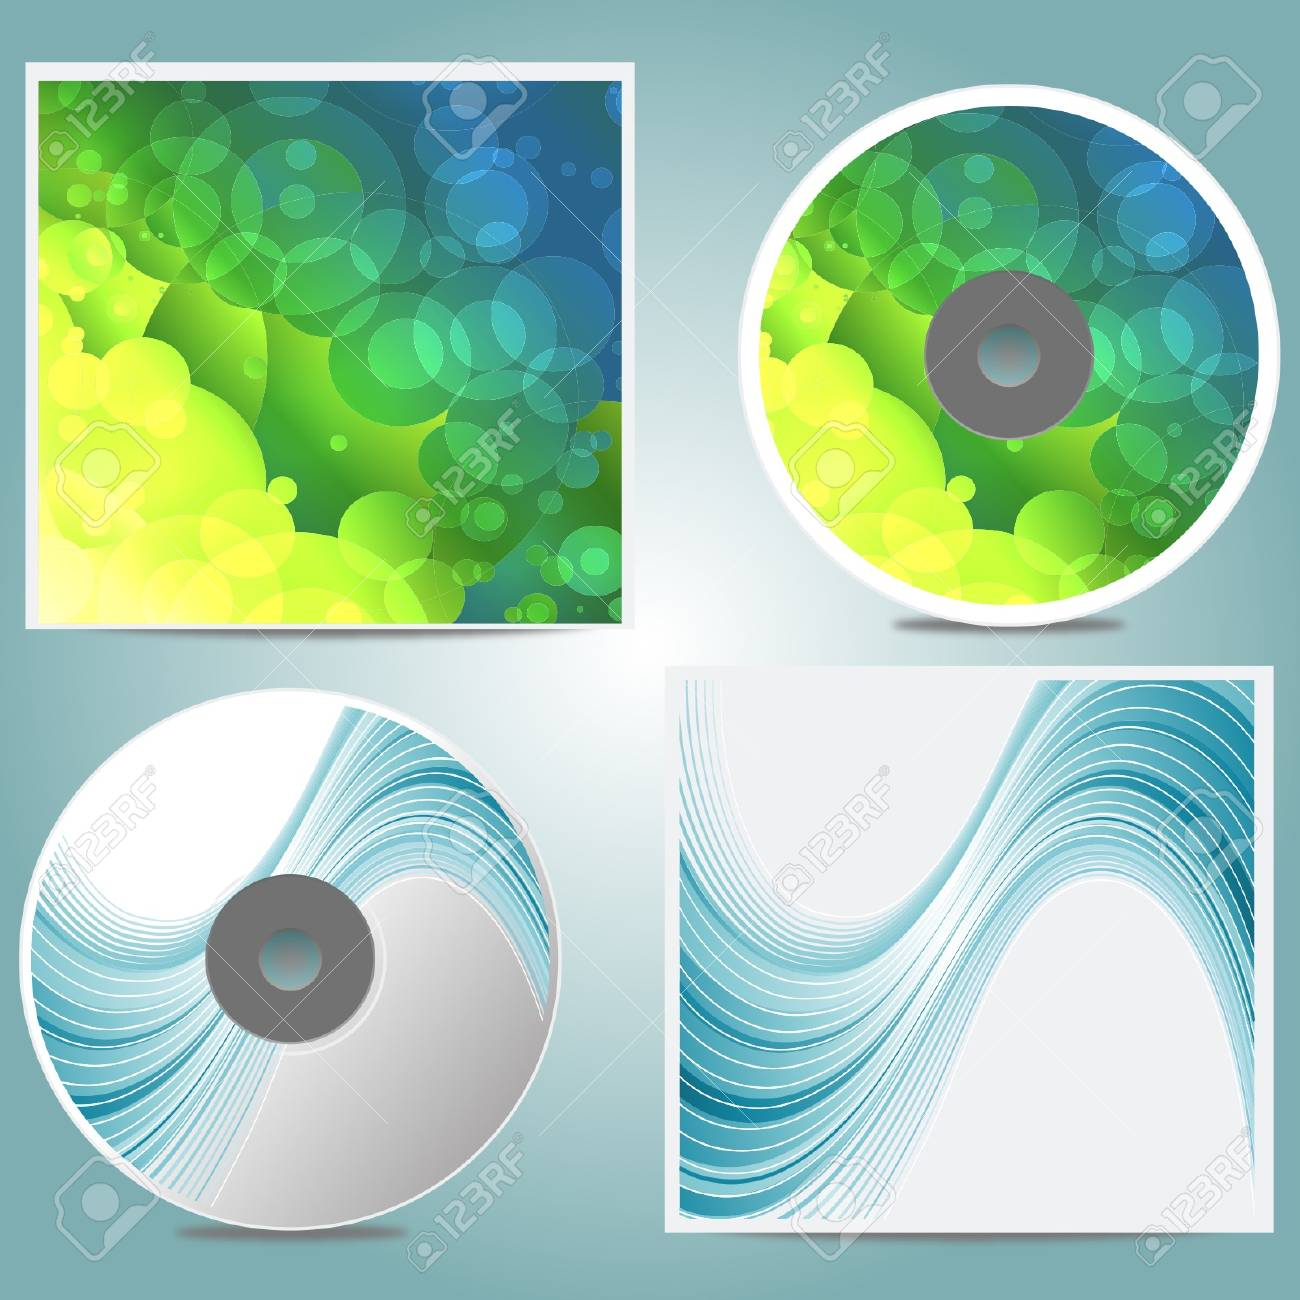 Compact disc different designs vector cover Stock Vector - 18386041